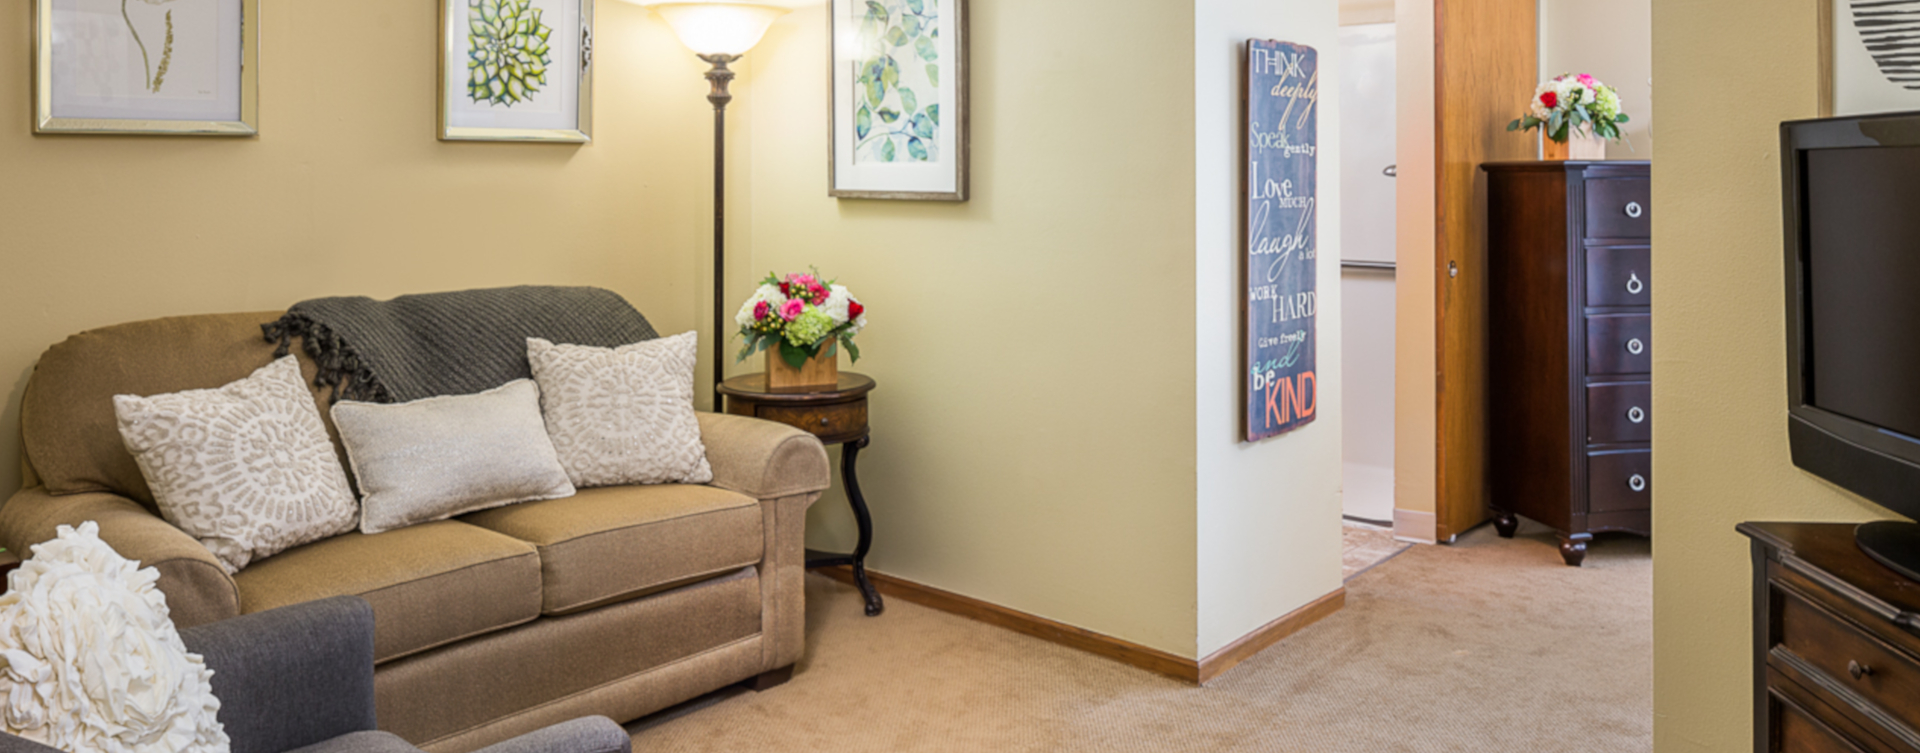 Get a new lease on life with a cozy apartment at Bickford of Grand Island